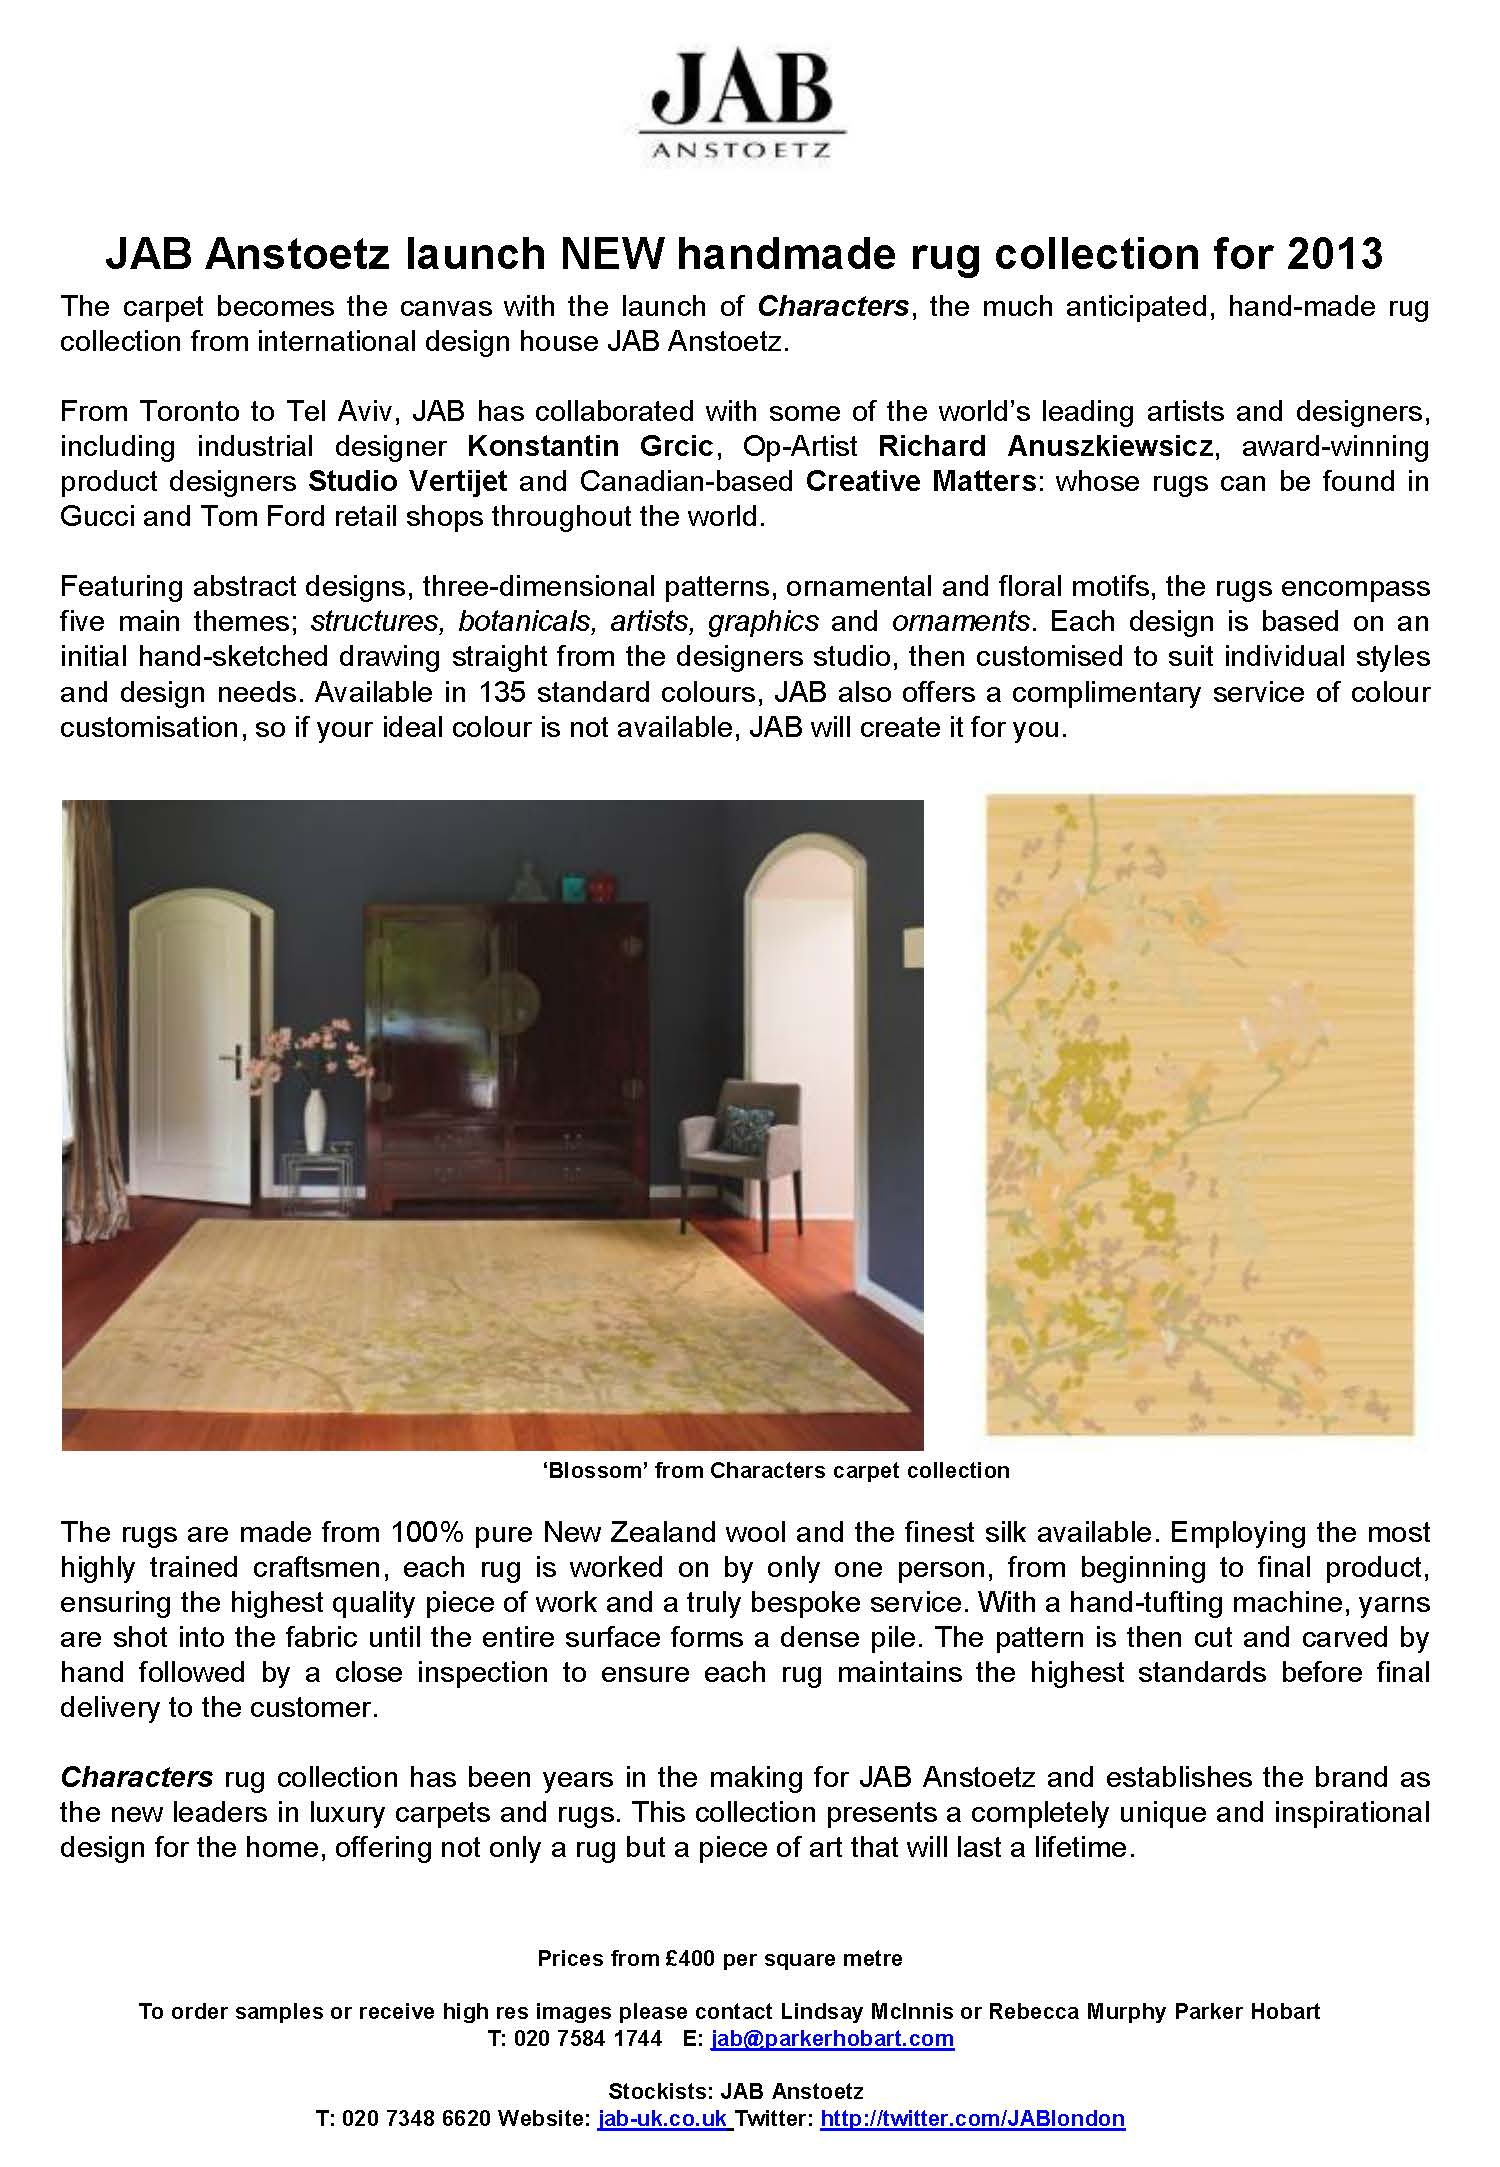 JAB Anstoetz launch NEW Characters rug collection_Page_1